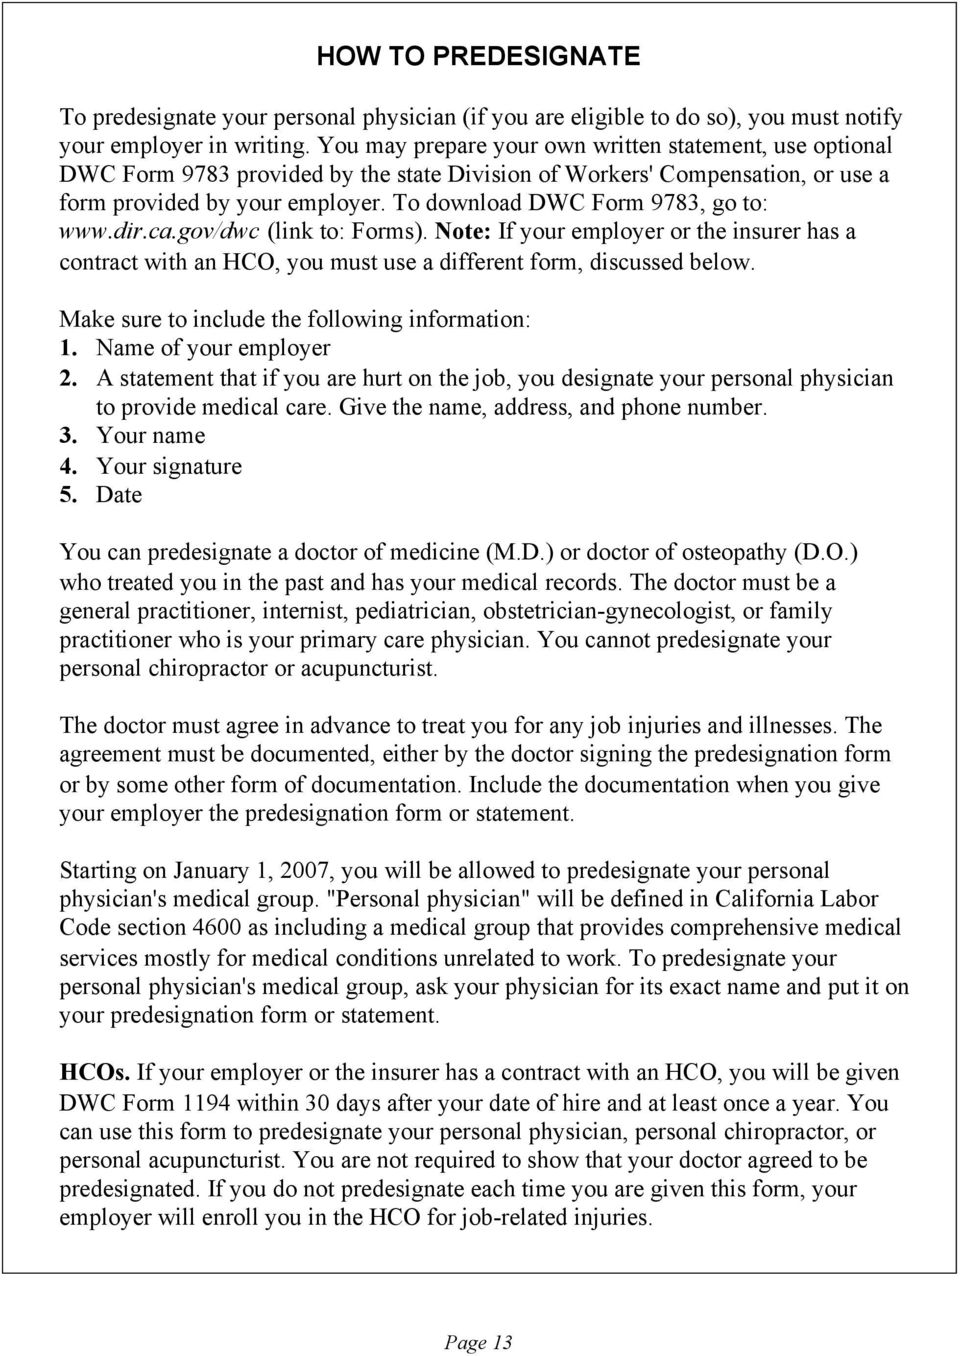 To download DWC Form 9783, go to: www.dir.ca.gov/dwc (link to: Forms). Note: If your employer or the insurer has a contract with an HCO, you must use a different form, discussed below.